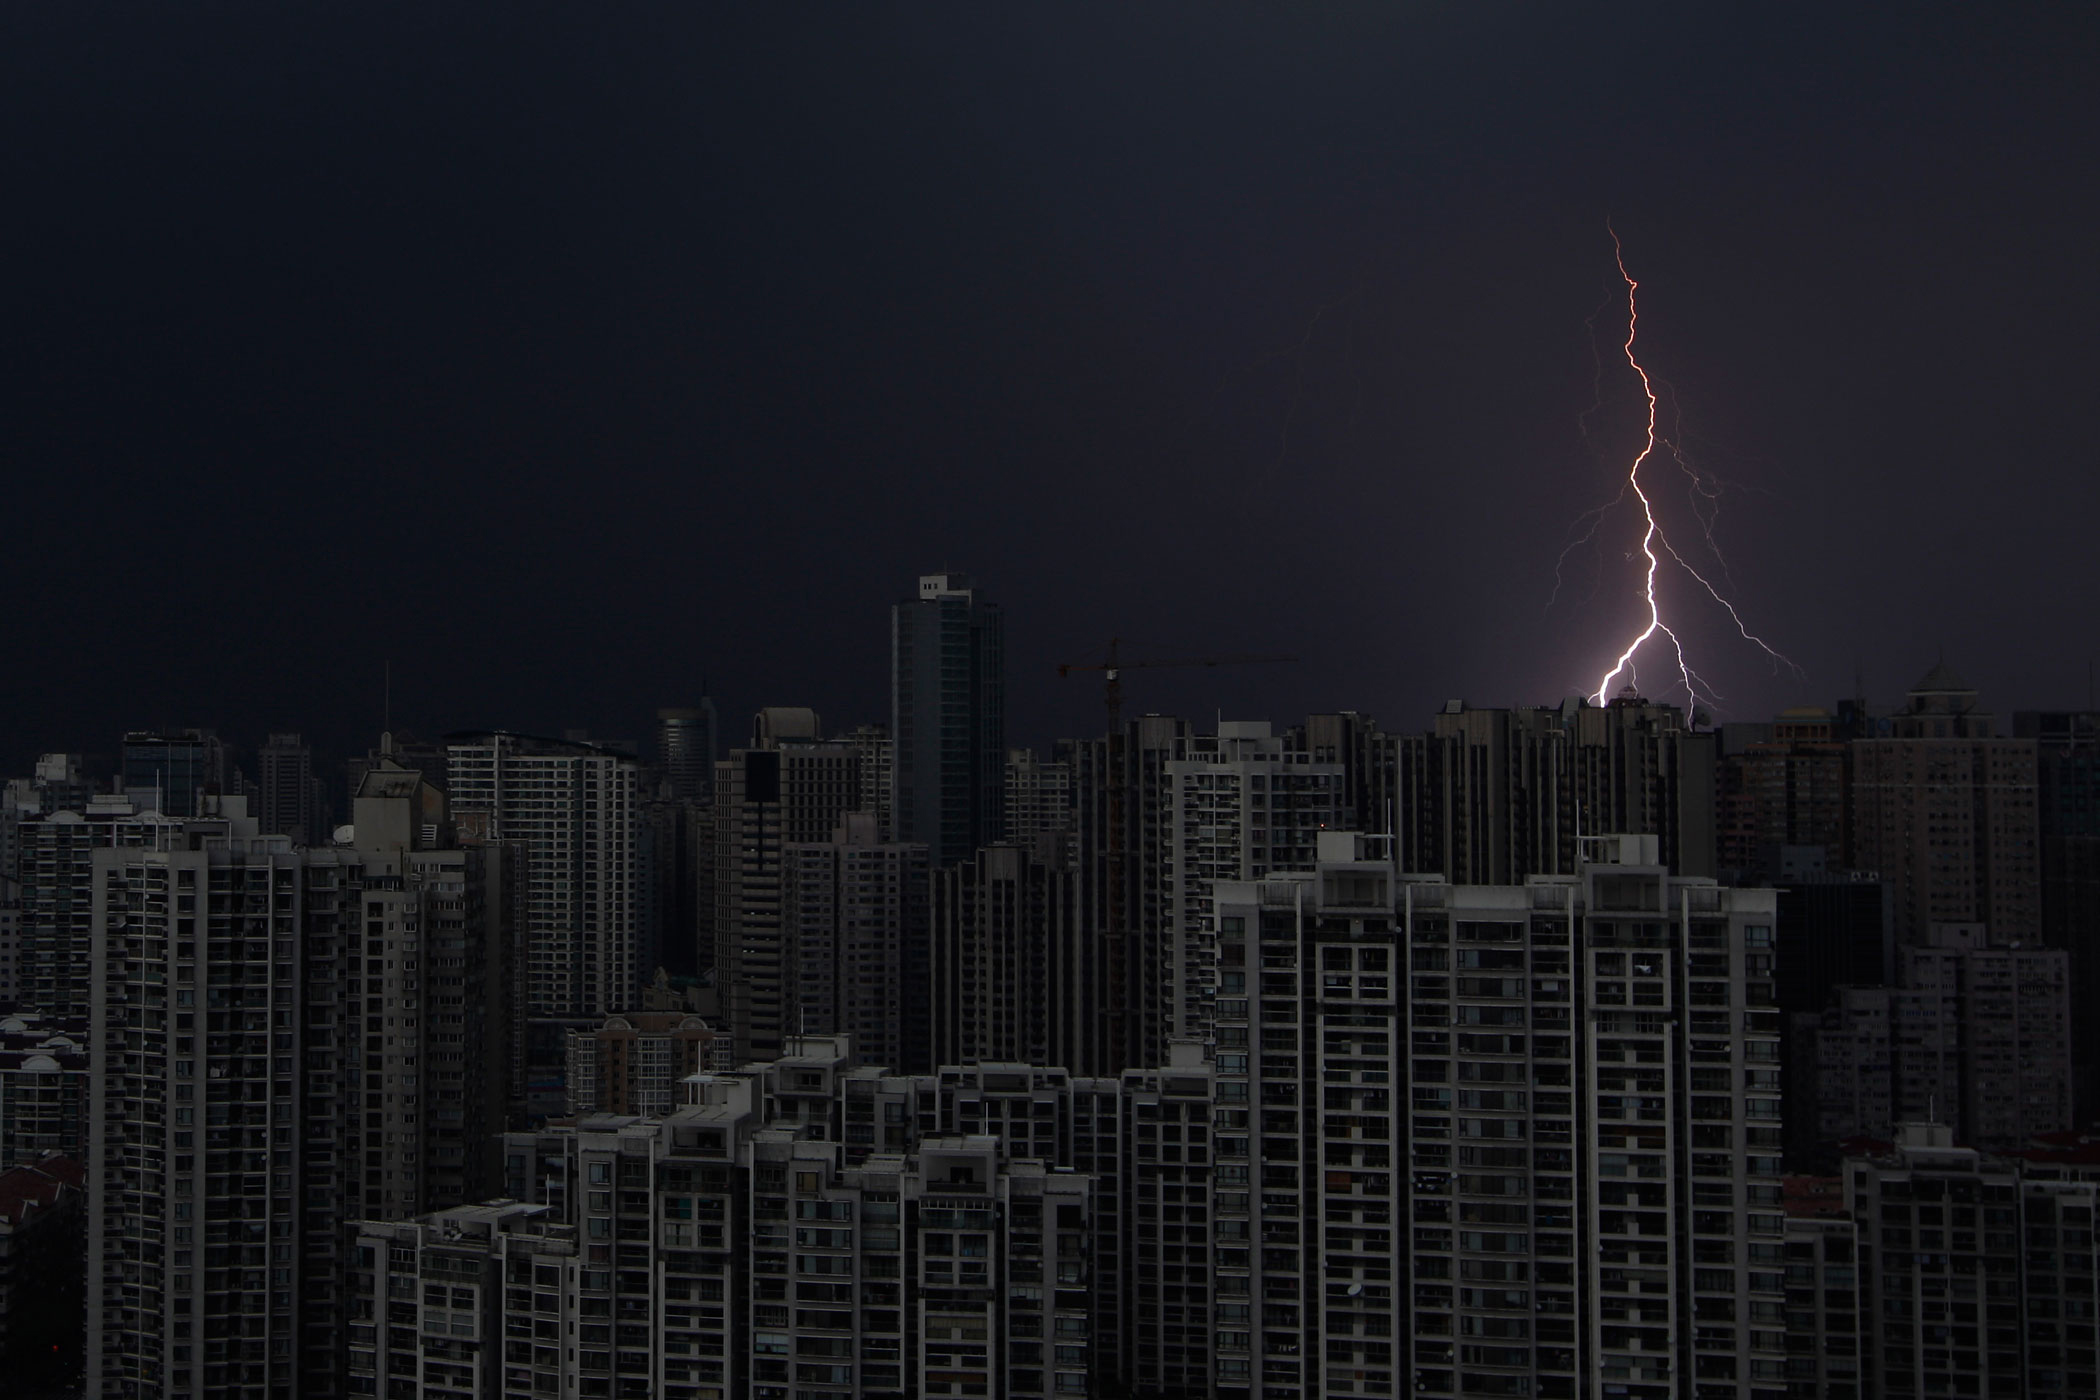 Lightning is seen above buildings during a storm in central Shanghai, Aug. 15, 2012.